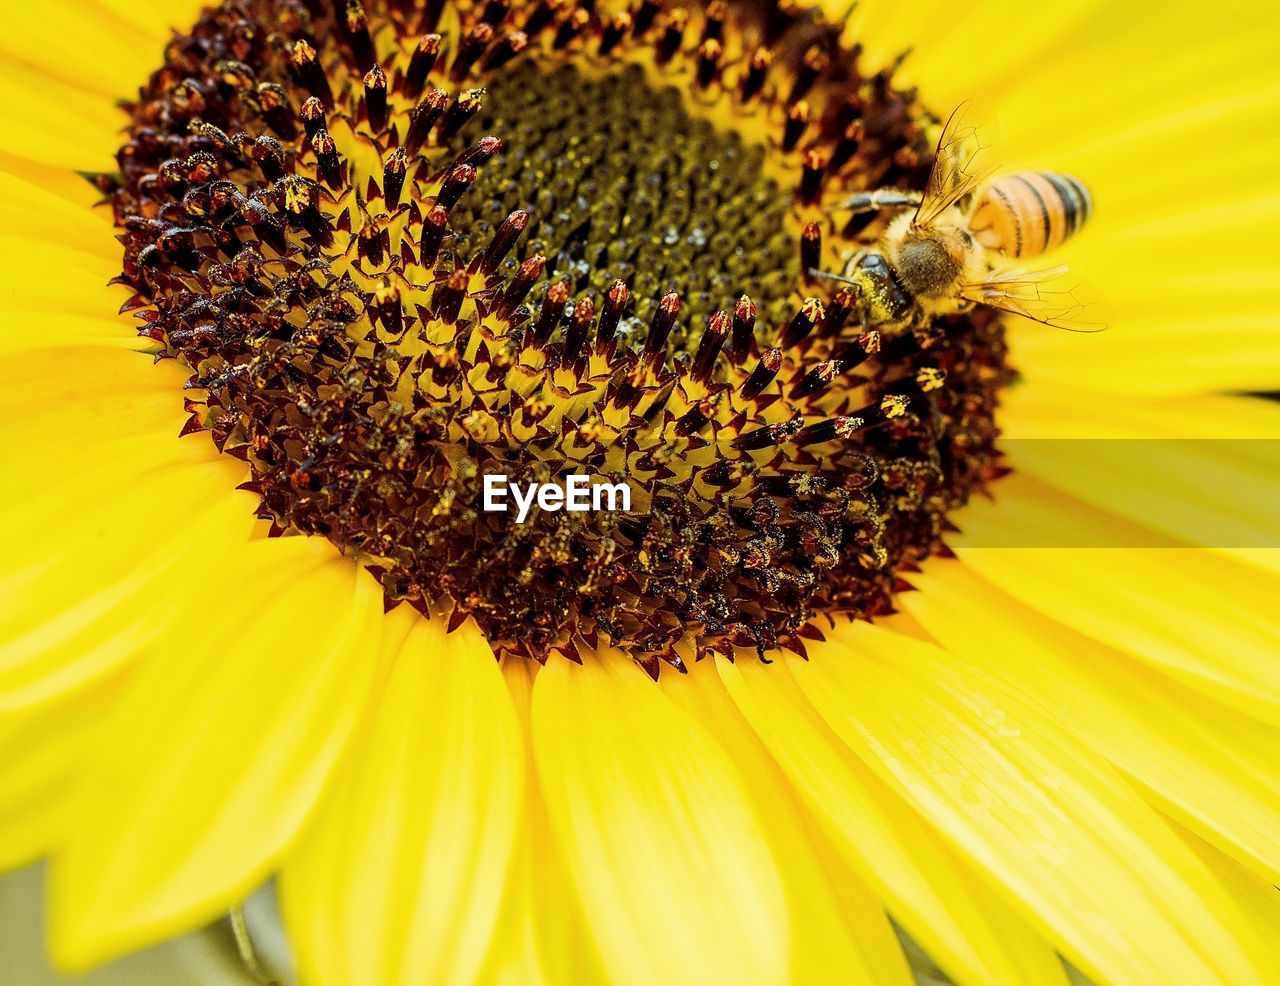 flower, flowering plant, petal, flower head, fragility, pollen, vulnerability, yellow, beauty in nature, freshness, inflorescence, growth, close-up, plant, insect, invertebrate, coneflower, no people, sunflower, outdoors, pollination